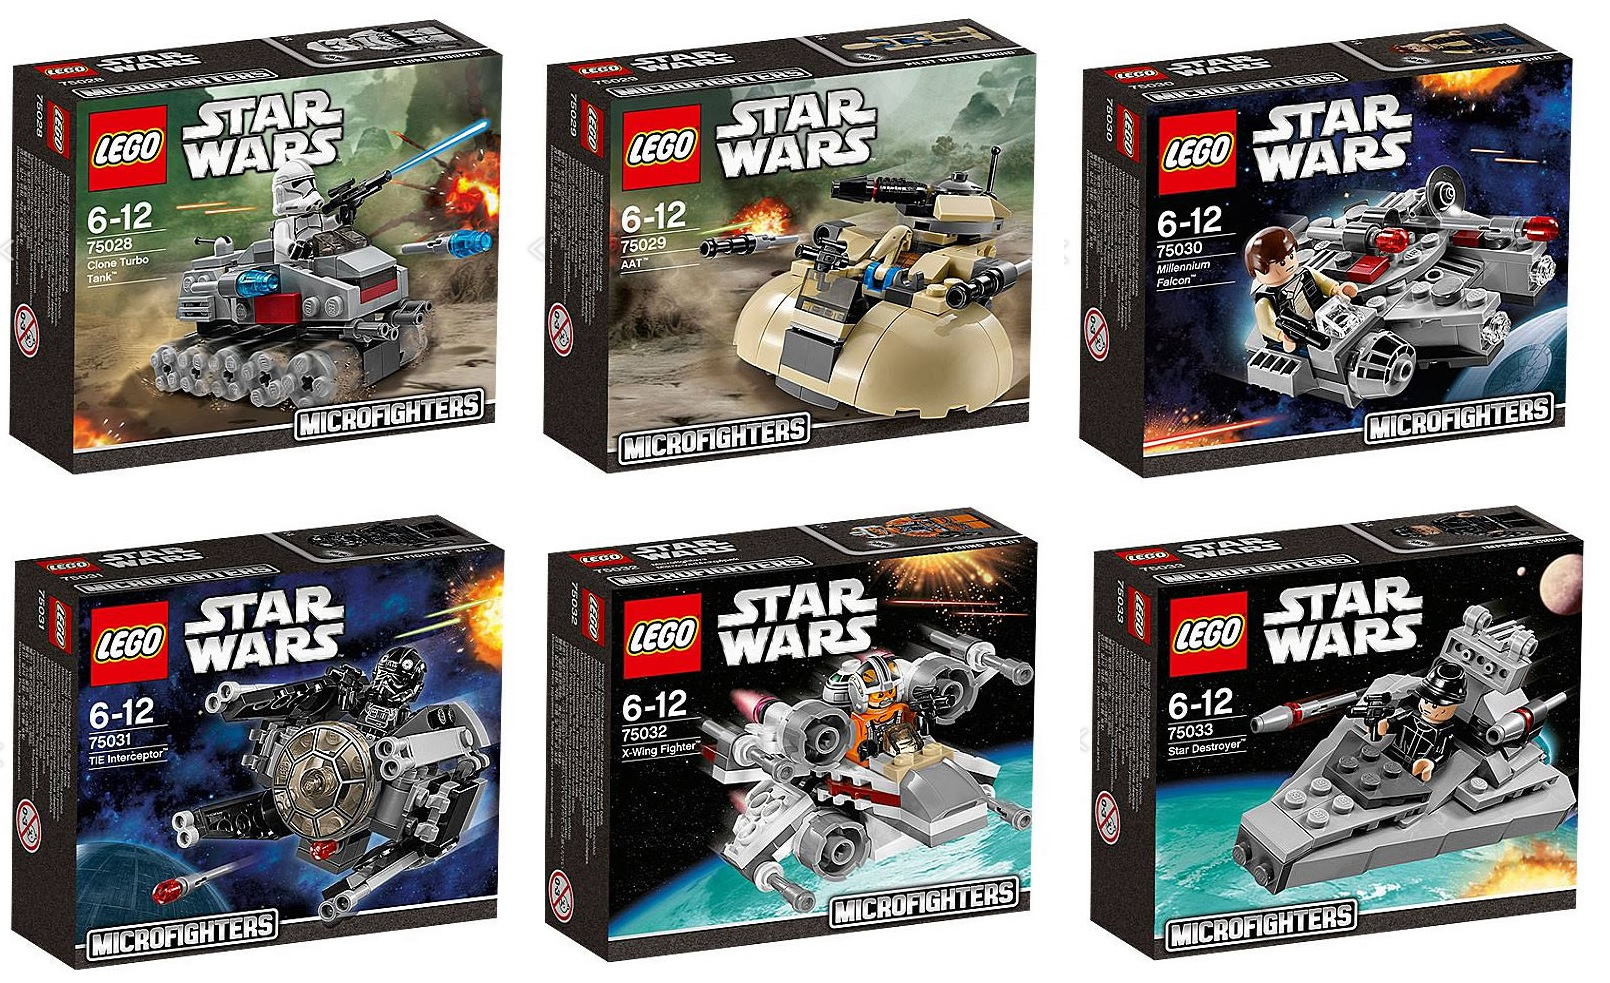 Lego star wars microfighters mini ships with minifigure - Lego star wars 1 2 3 4 5 6 ...